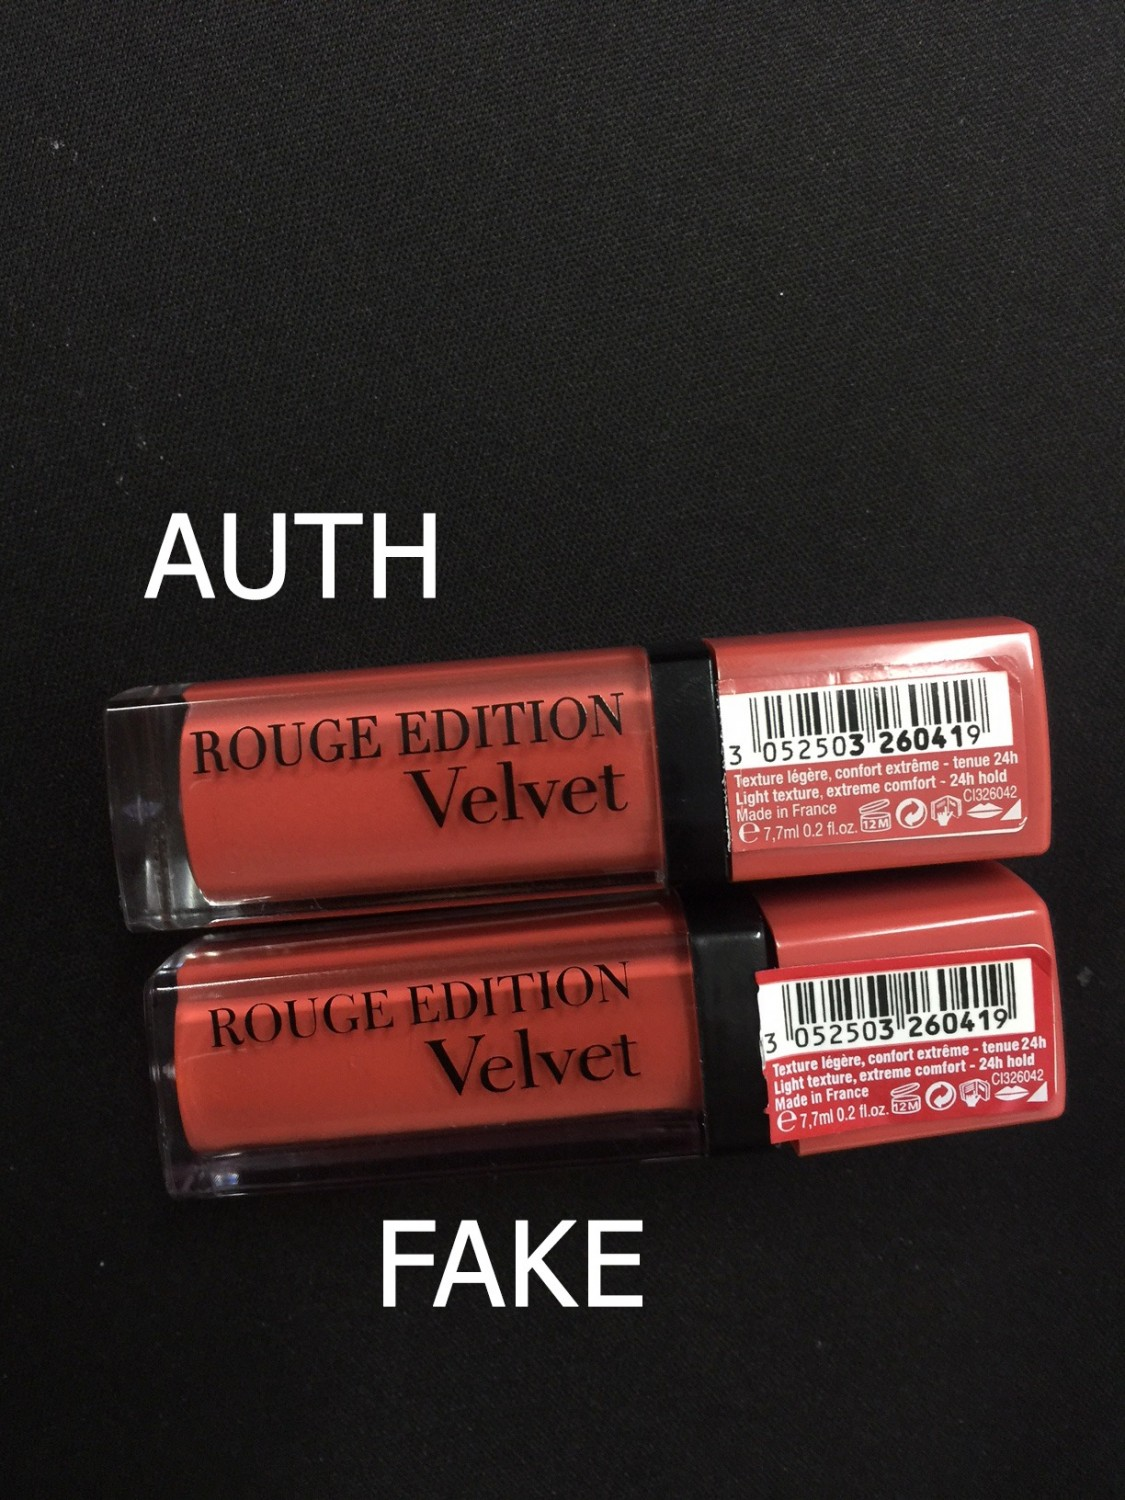 son bourjois rouge edition velvet that va gia 3